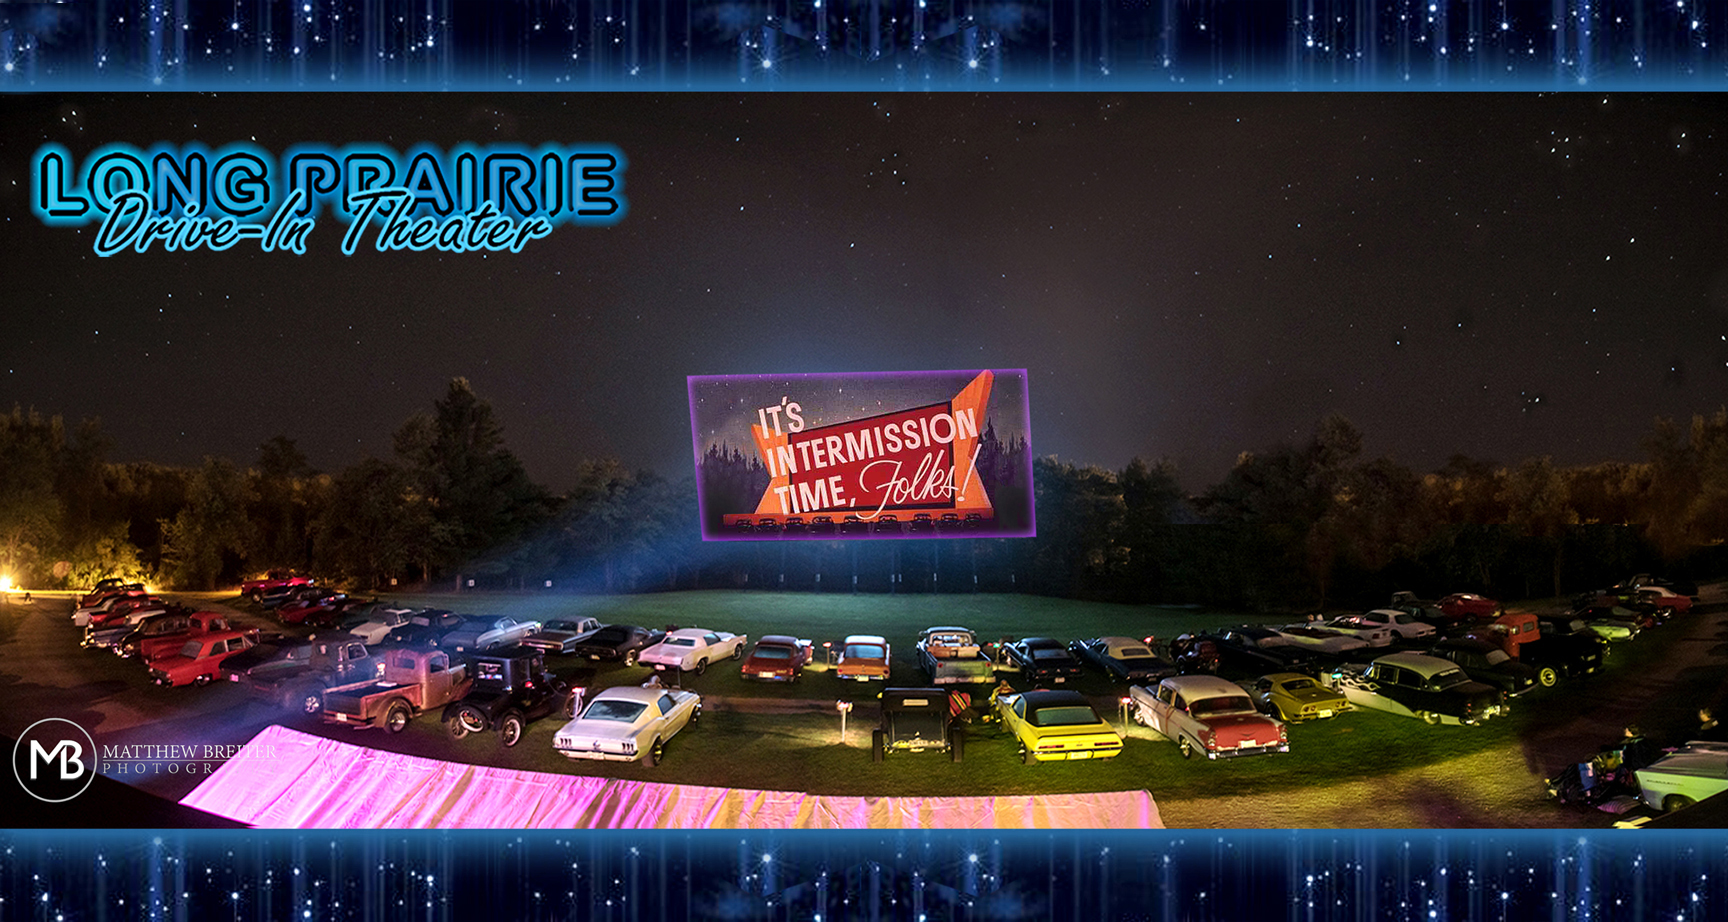 long prarie drive in theatre website image